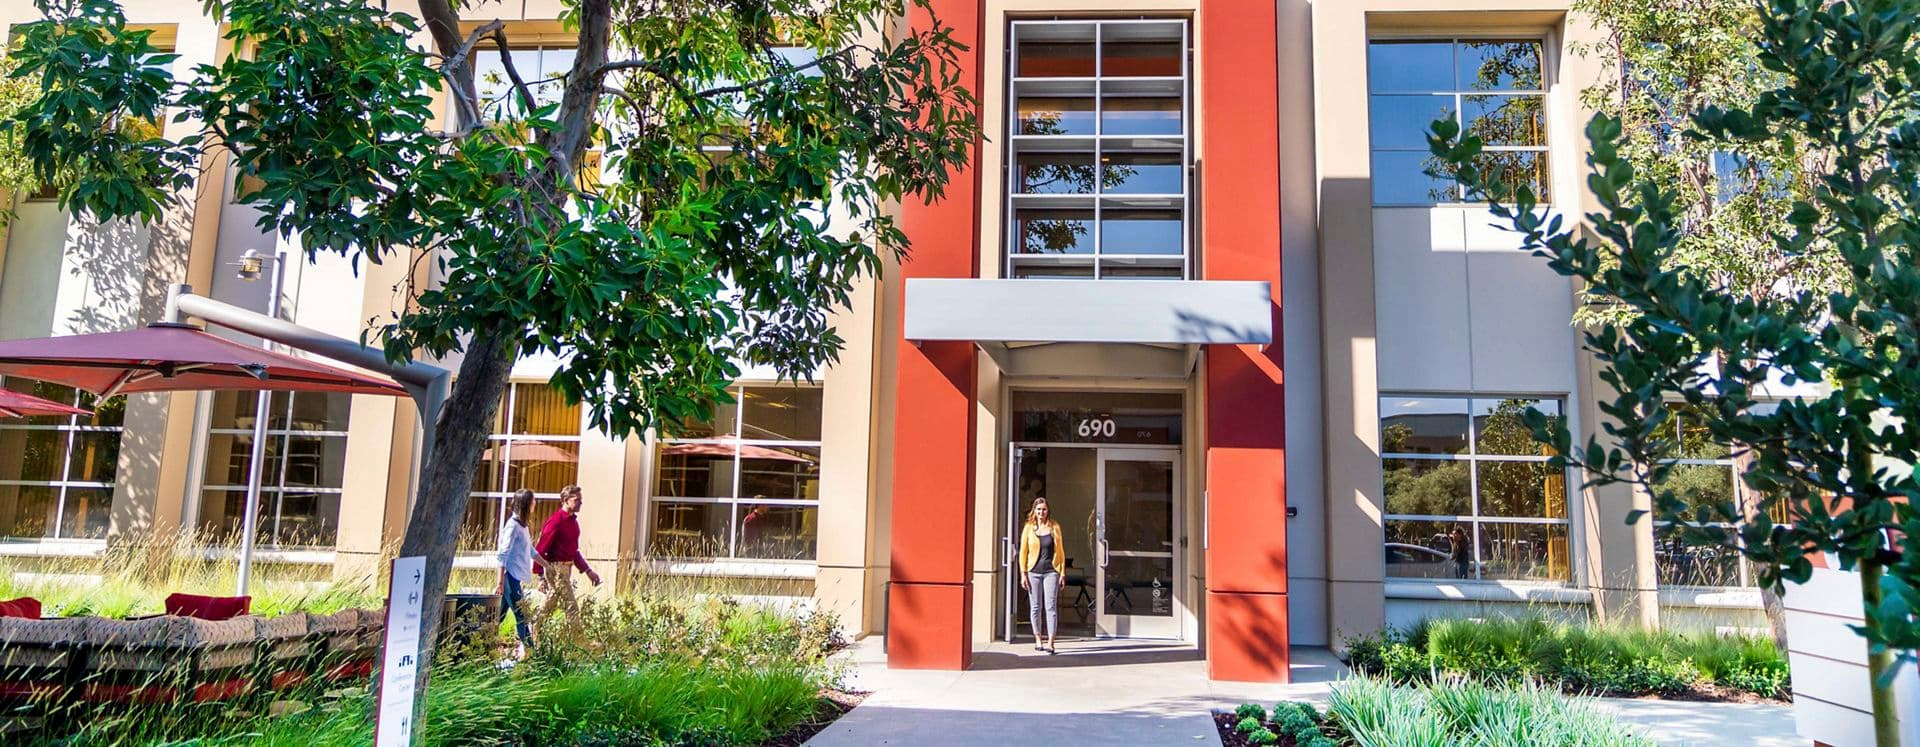 Lifestyle photography of the building entry at McCarthy Center - 690 N McCarthy Boulevard in Milpitas, CA